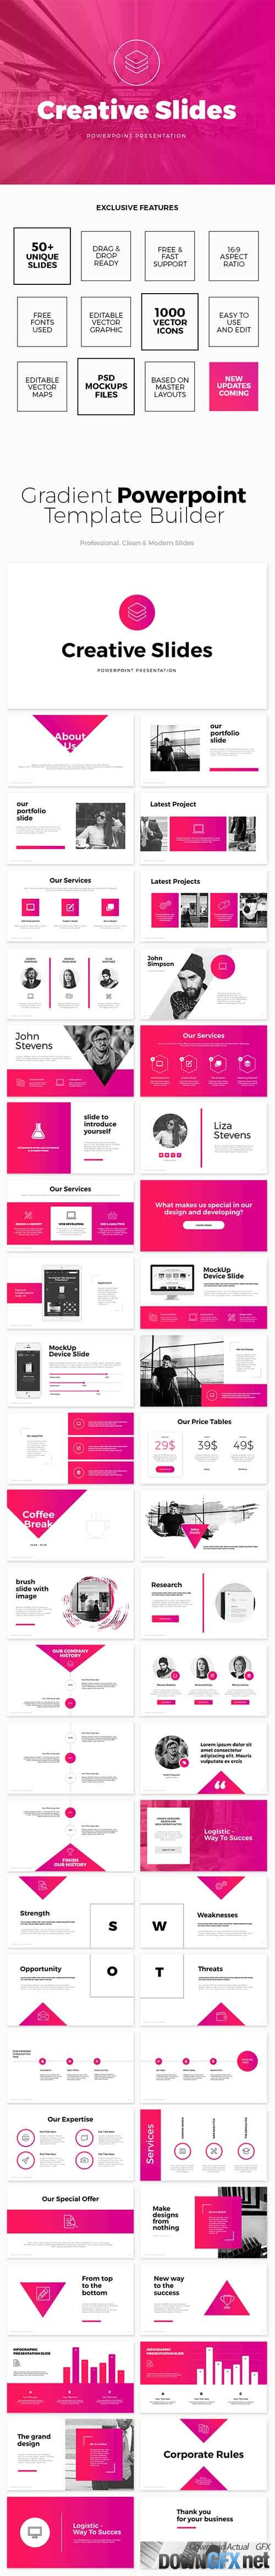 Sakura - Powerpoint Template 19782048